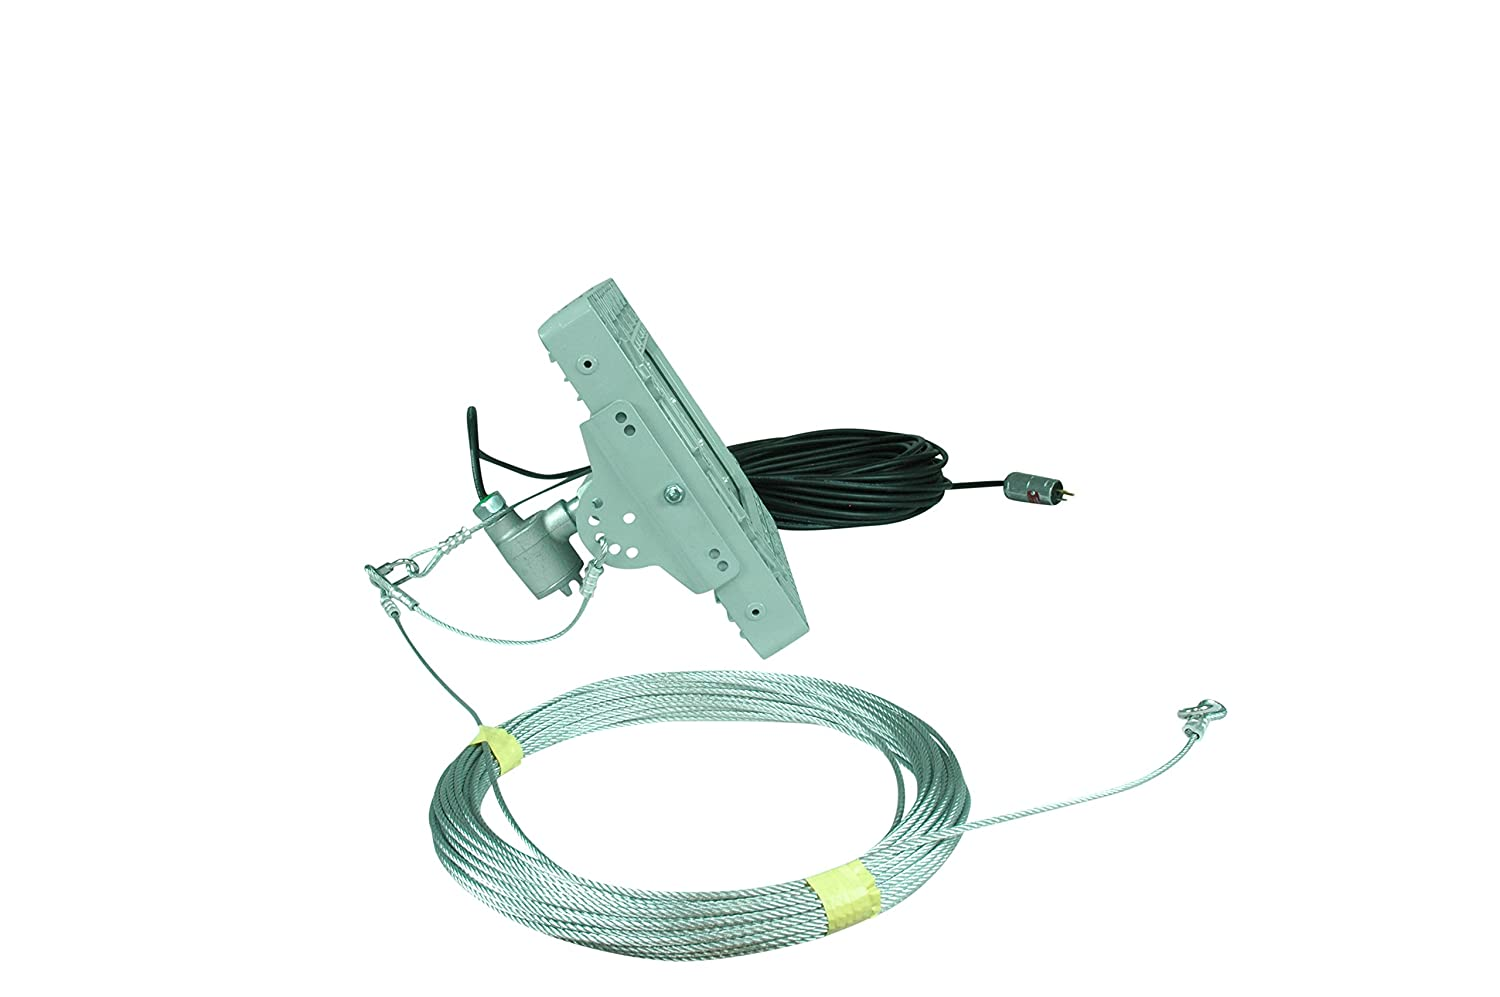 C1d1 Explosion Proof 150 Watt Suspended Led Light Fixture 100ft Wiring 277 Volt Fluorescent Fixtures Get Free Image Cord Safety Cable Joist Mount